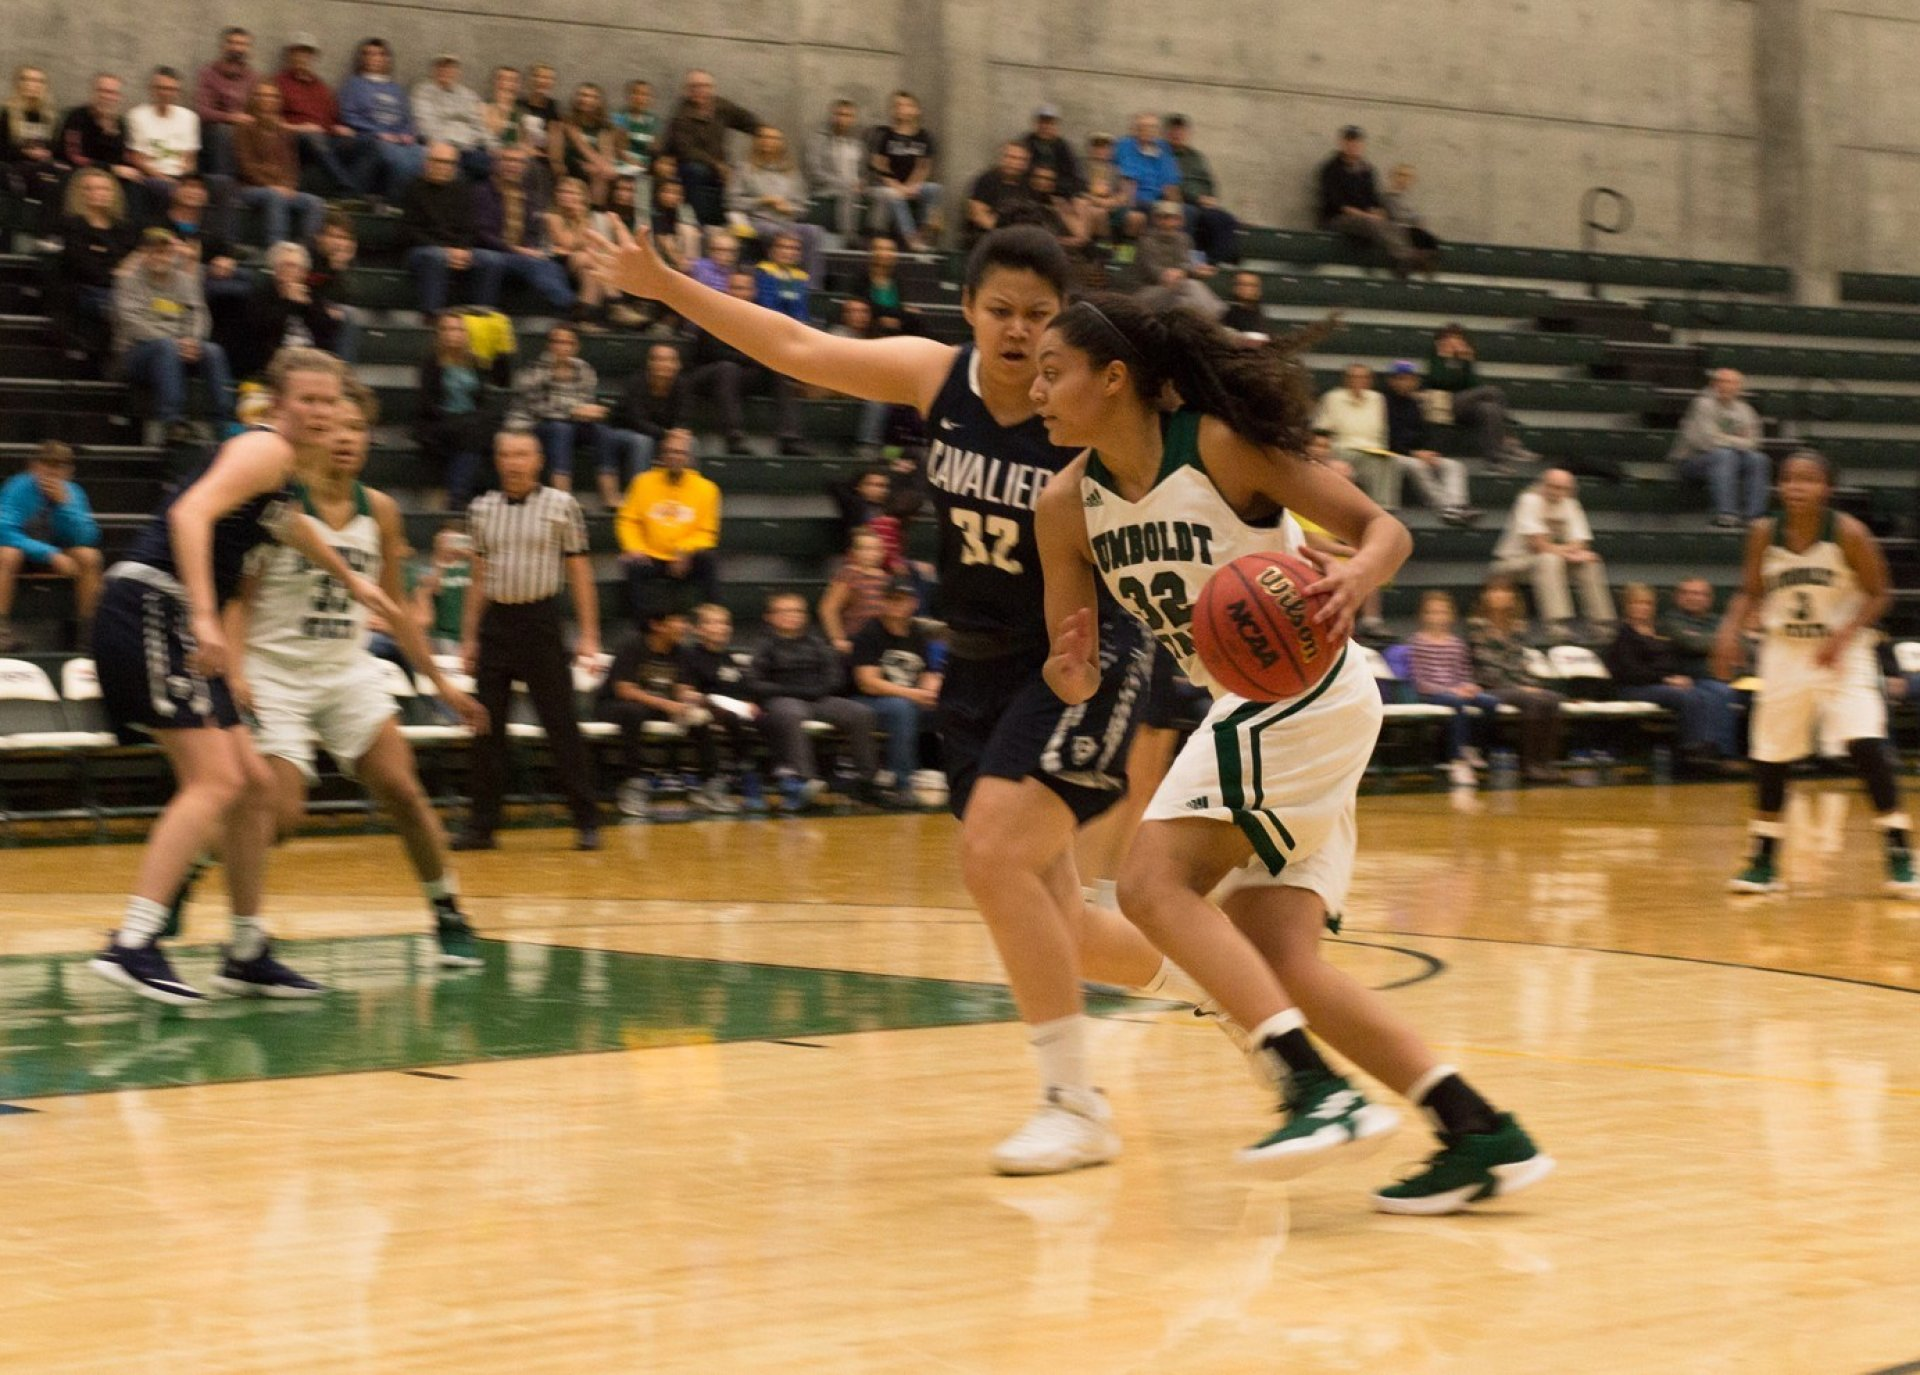 Lumberjacks forward Isa Conde (32) drives to her left against the Cavaliers defense. The Jacks fell to the Cavs in the game's last seconds 72-71 at Lumberjack arena on Nov. 20. | Photo by Lauren Shea